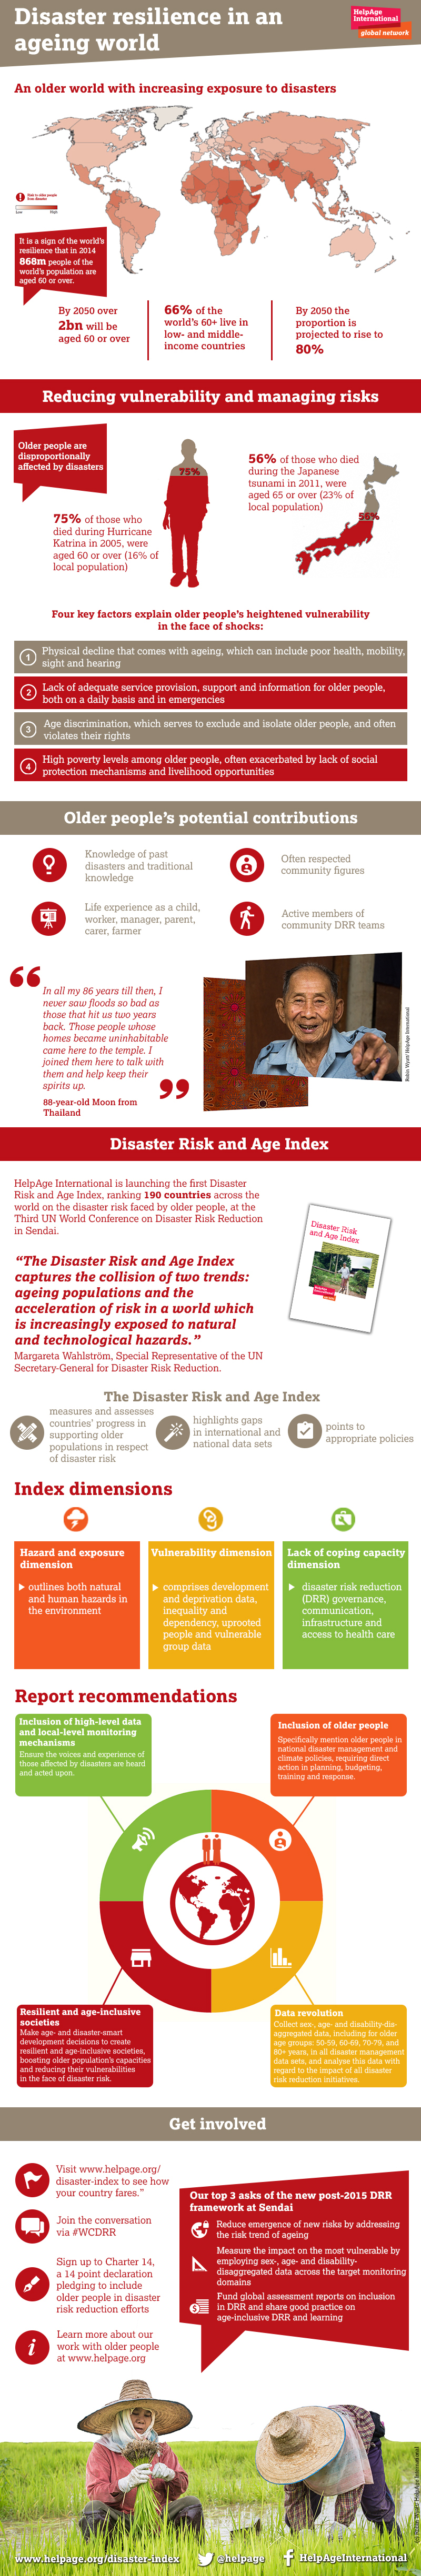 Disaster resilience in an ageing world infographic.